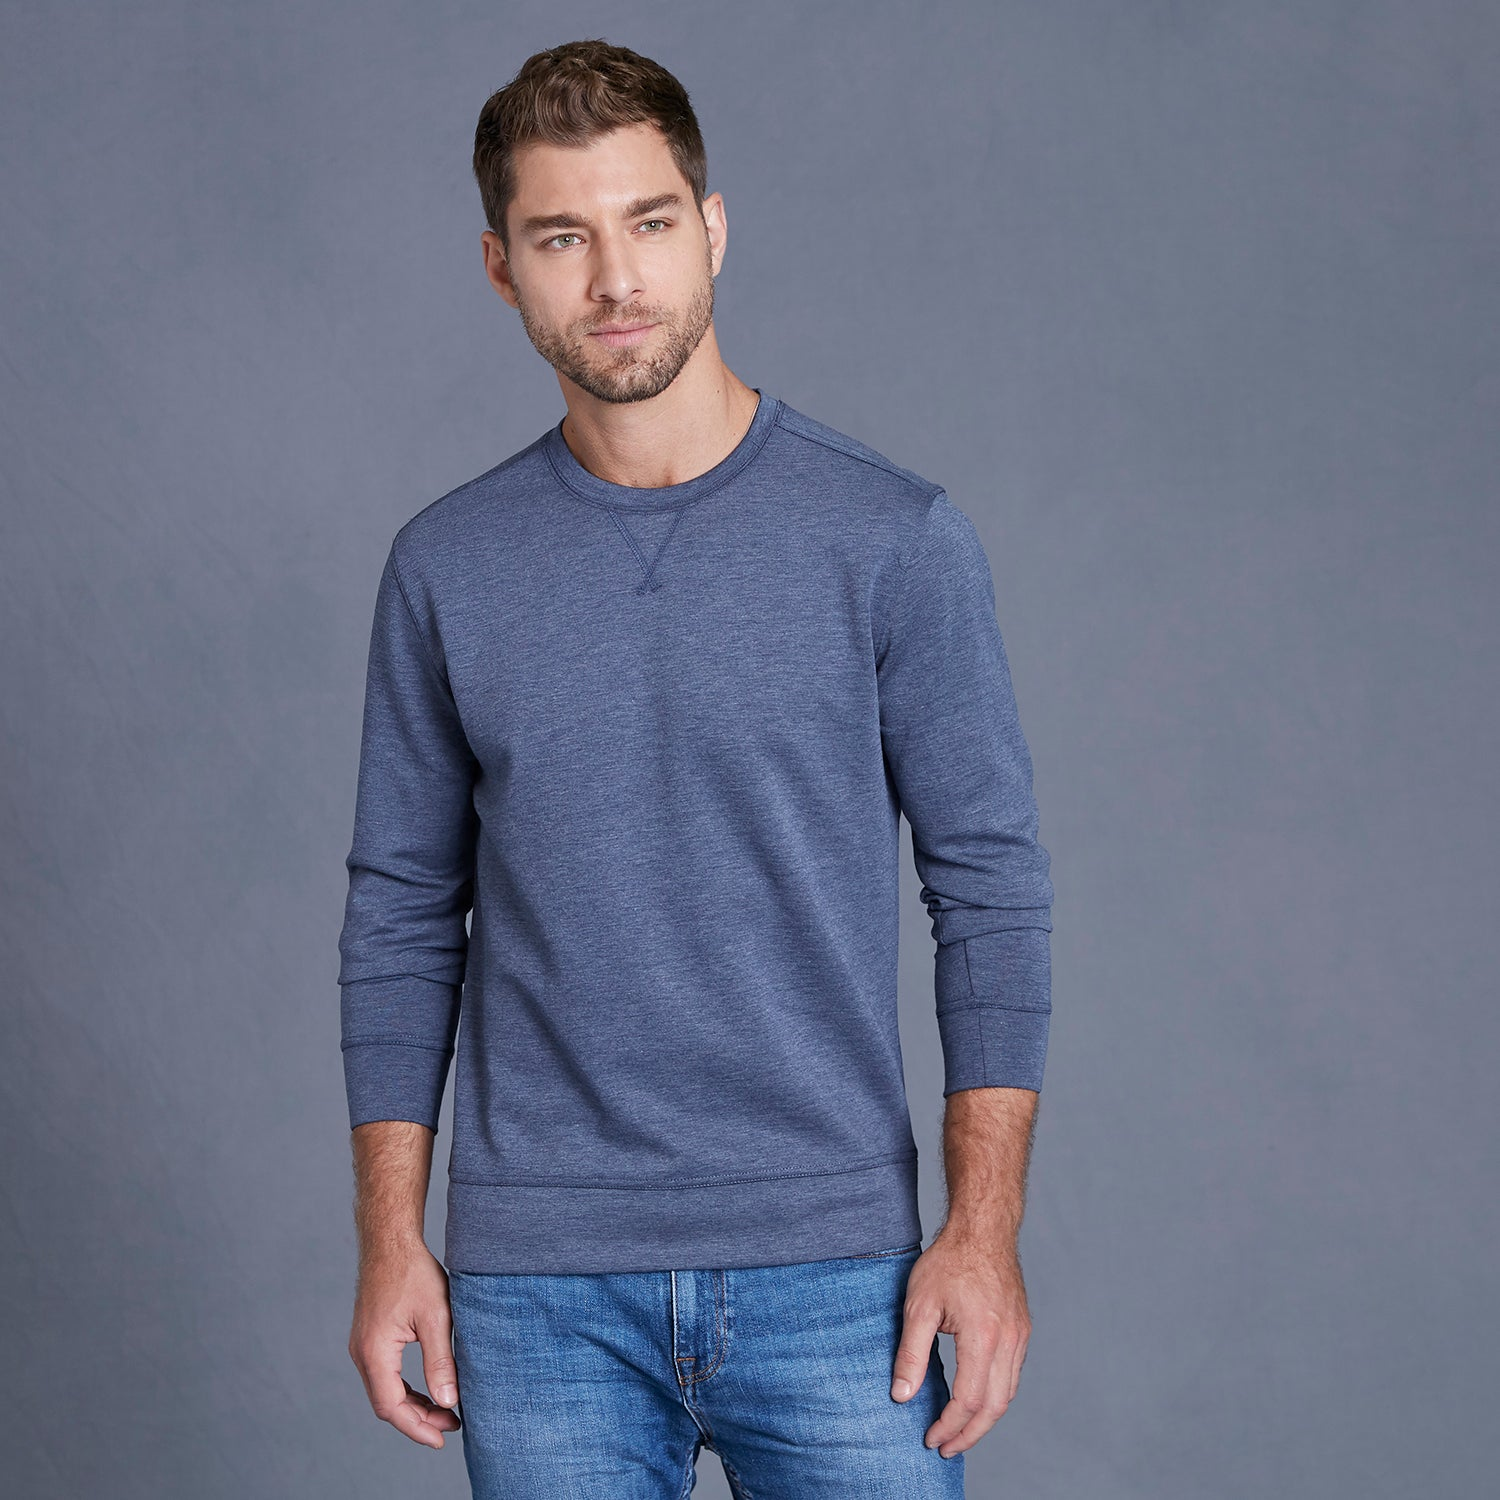 18703 - HeatLast Fleece Tech Crewneck